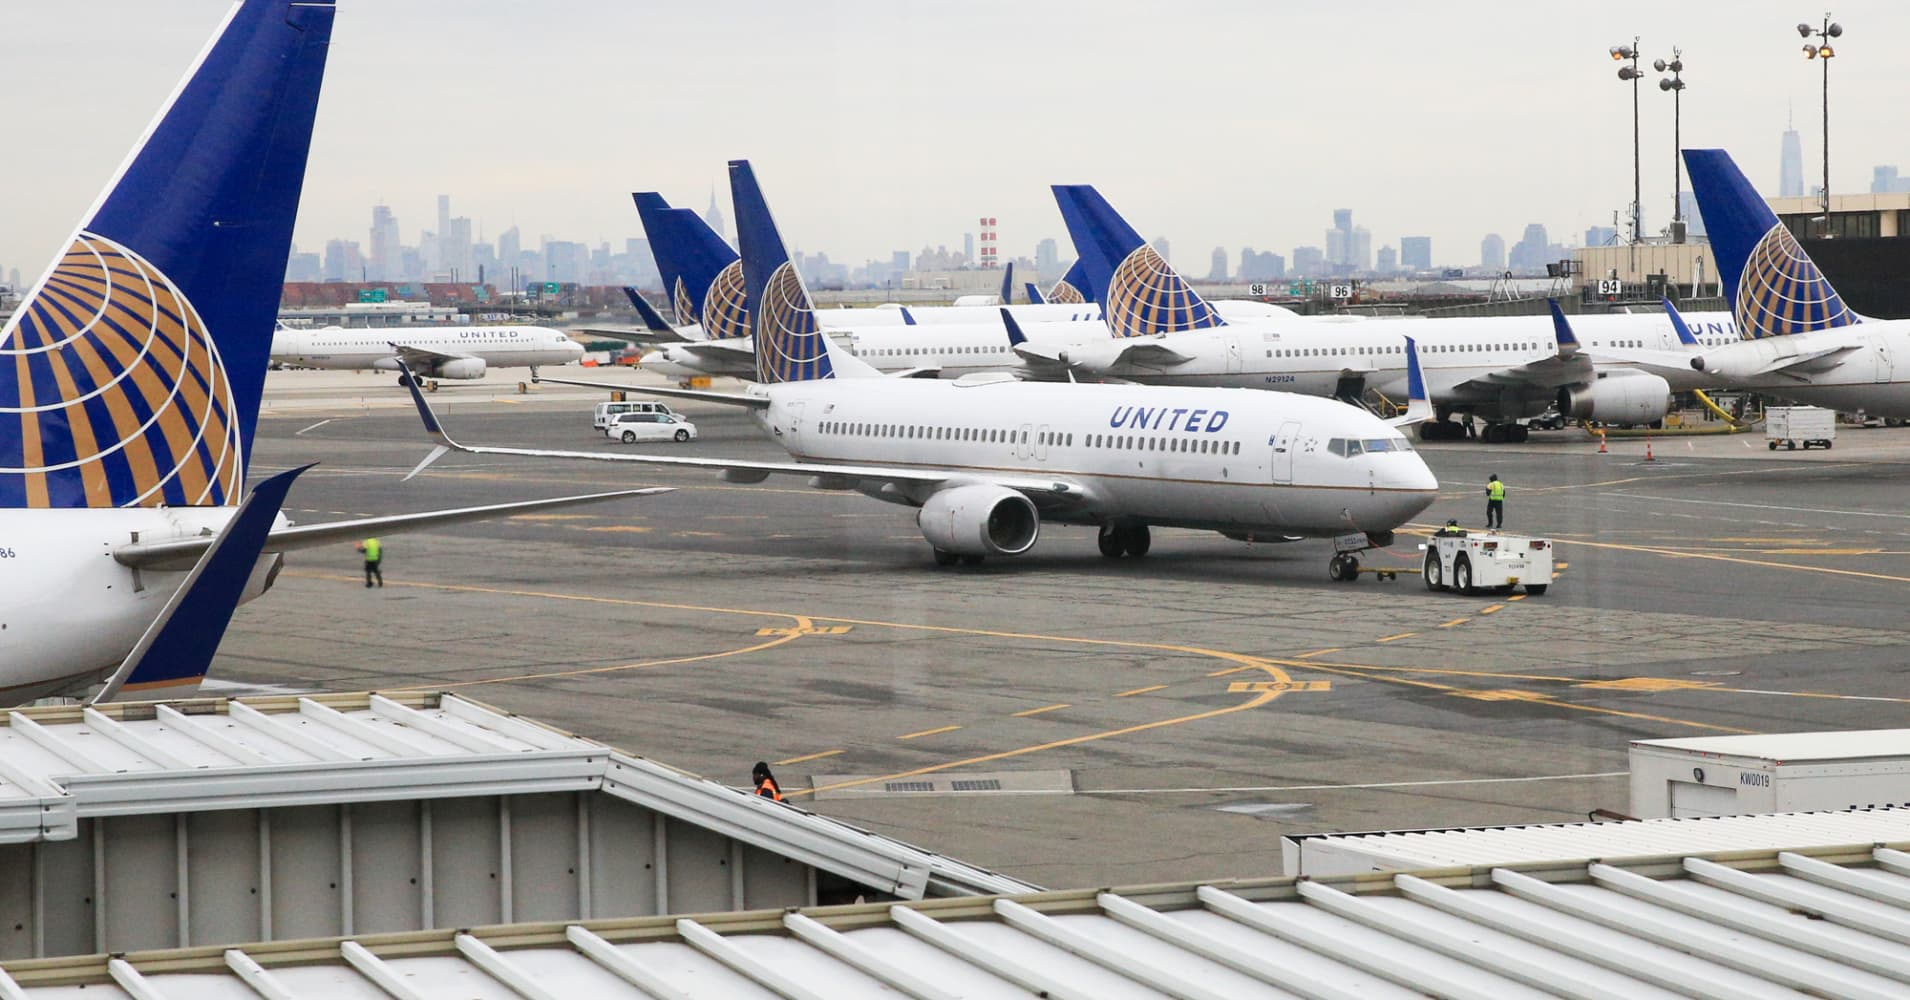 United Airlines pauses cargo-hold pet transport after missteps